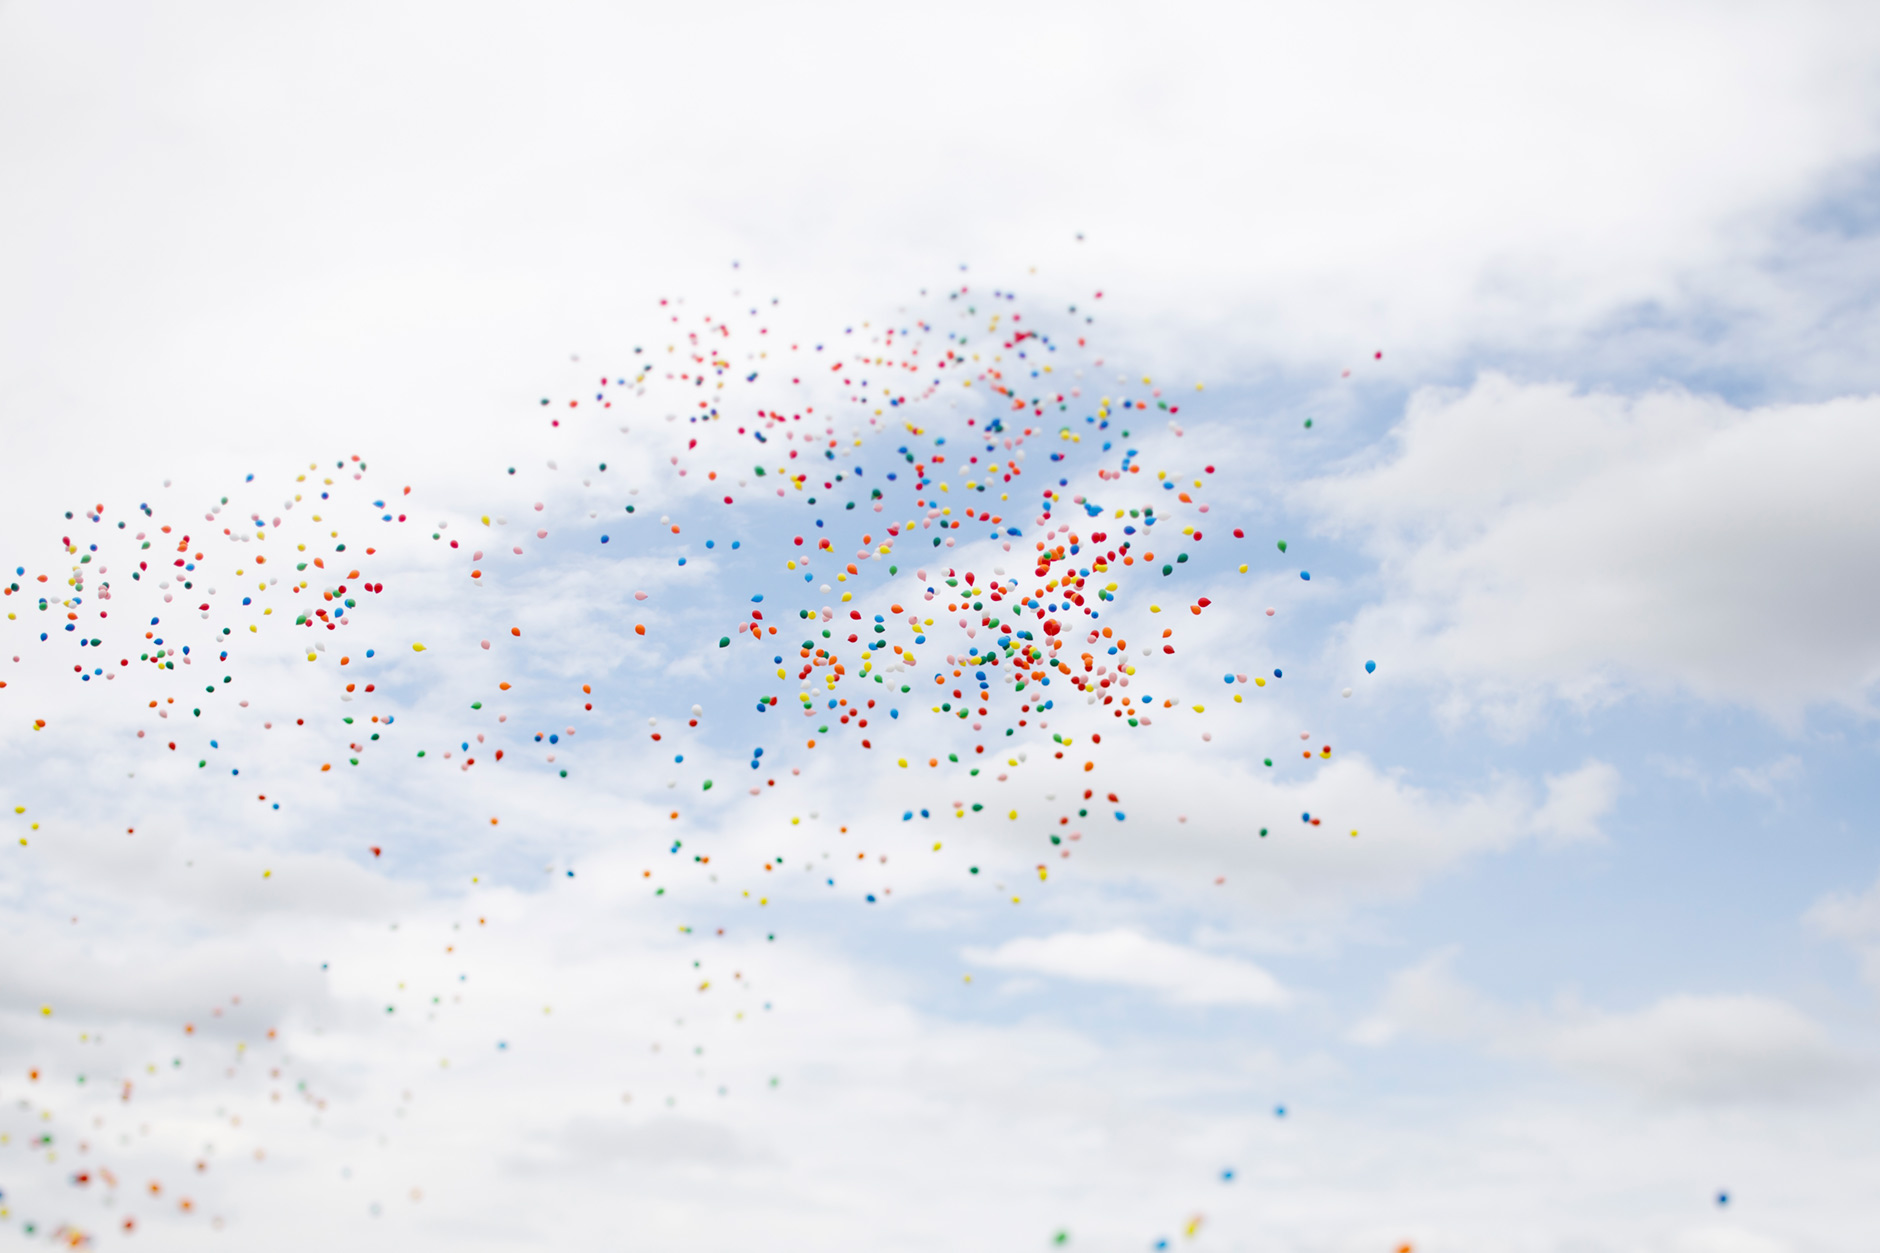 Balloons drift skywards before the start of the Men's Little 500 at Bill Armstrong Stadium on Saturday, April 22, 2017. (James Brosher/IU Communications)